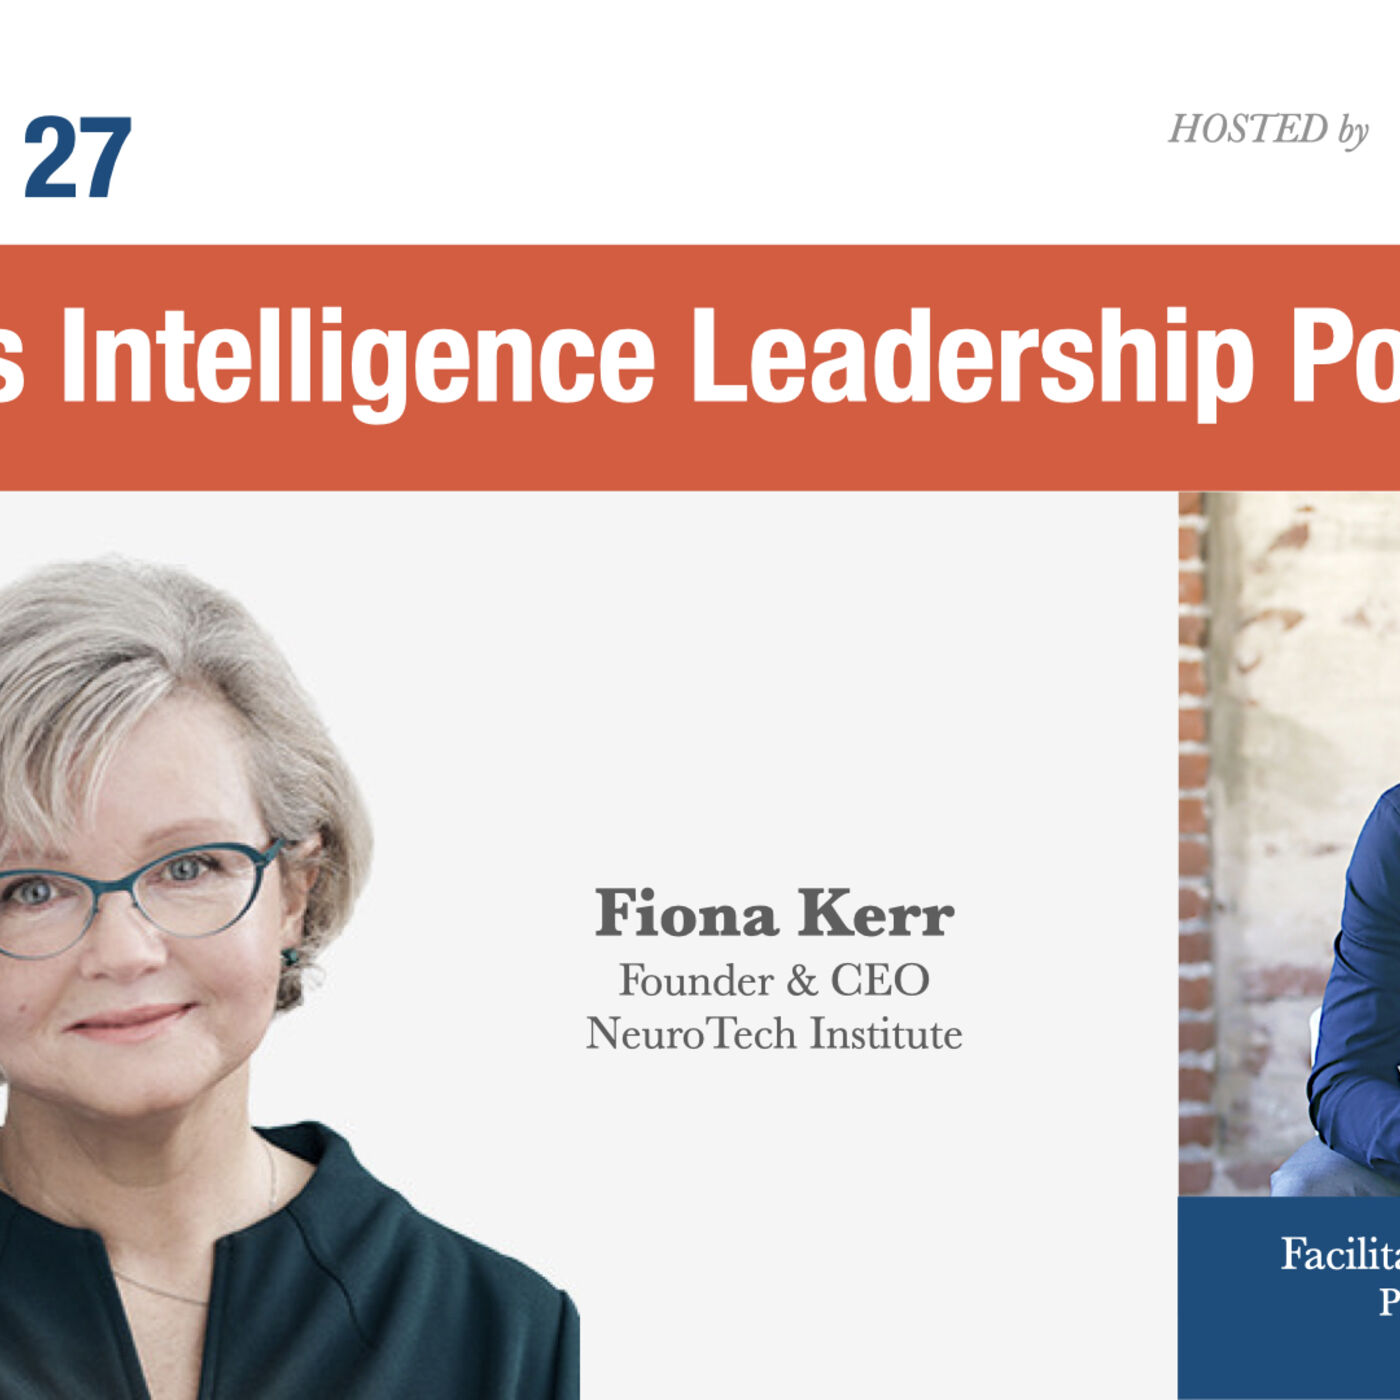 Episode 27: Why leadership needs more complex thinking, how leaders set the tone of the organization through their Volatilome, why leadership that inspires neural synchronization creates a more innovative and futures ready organization, and how to deal wi